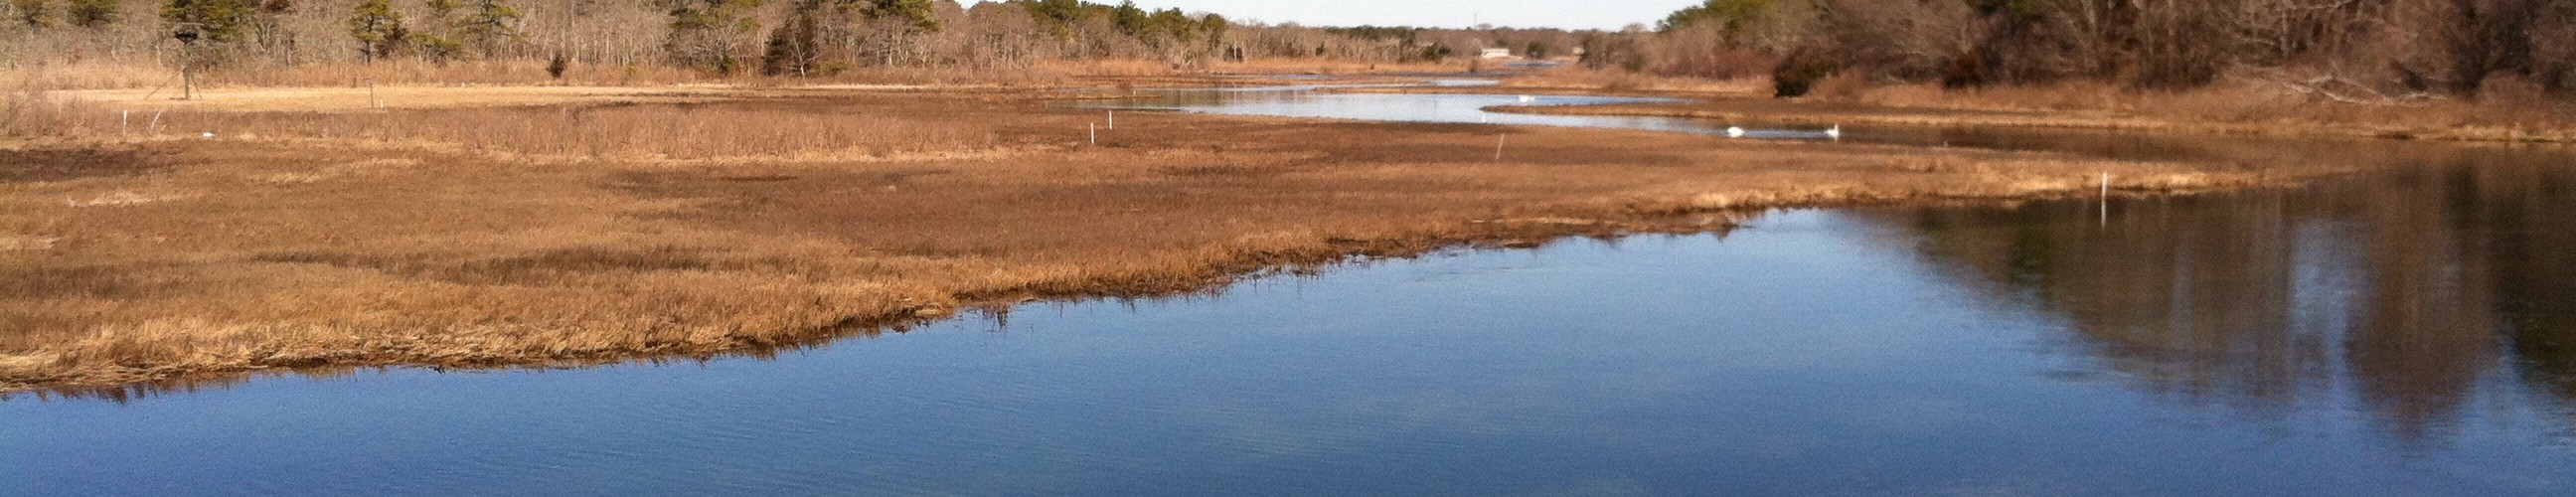 Parker River, Yarmouth, MA